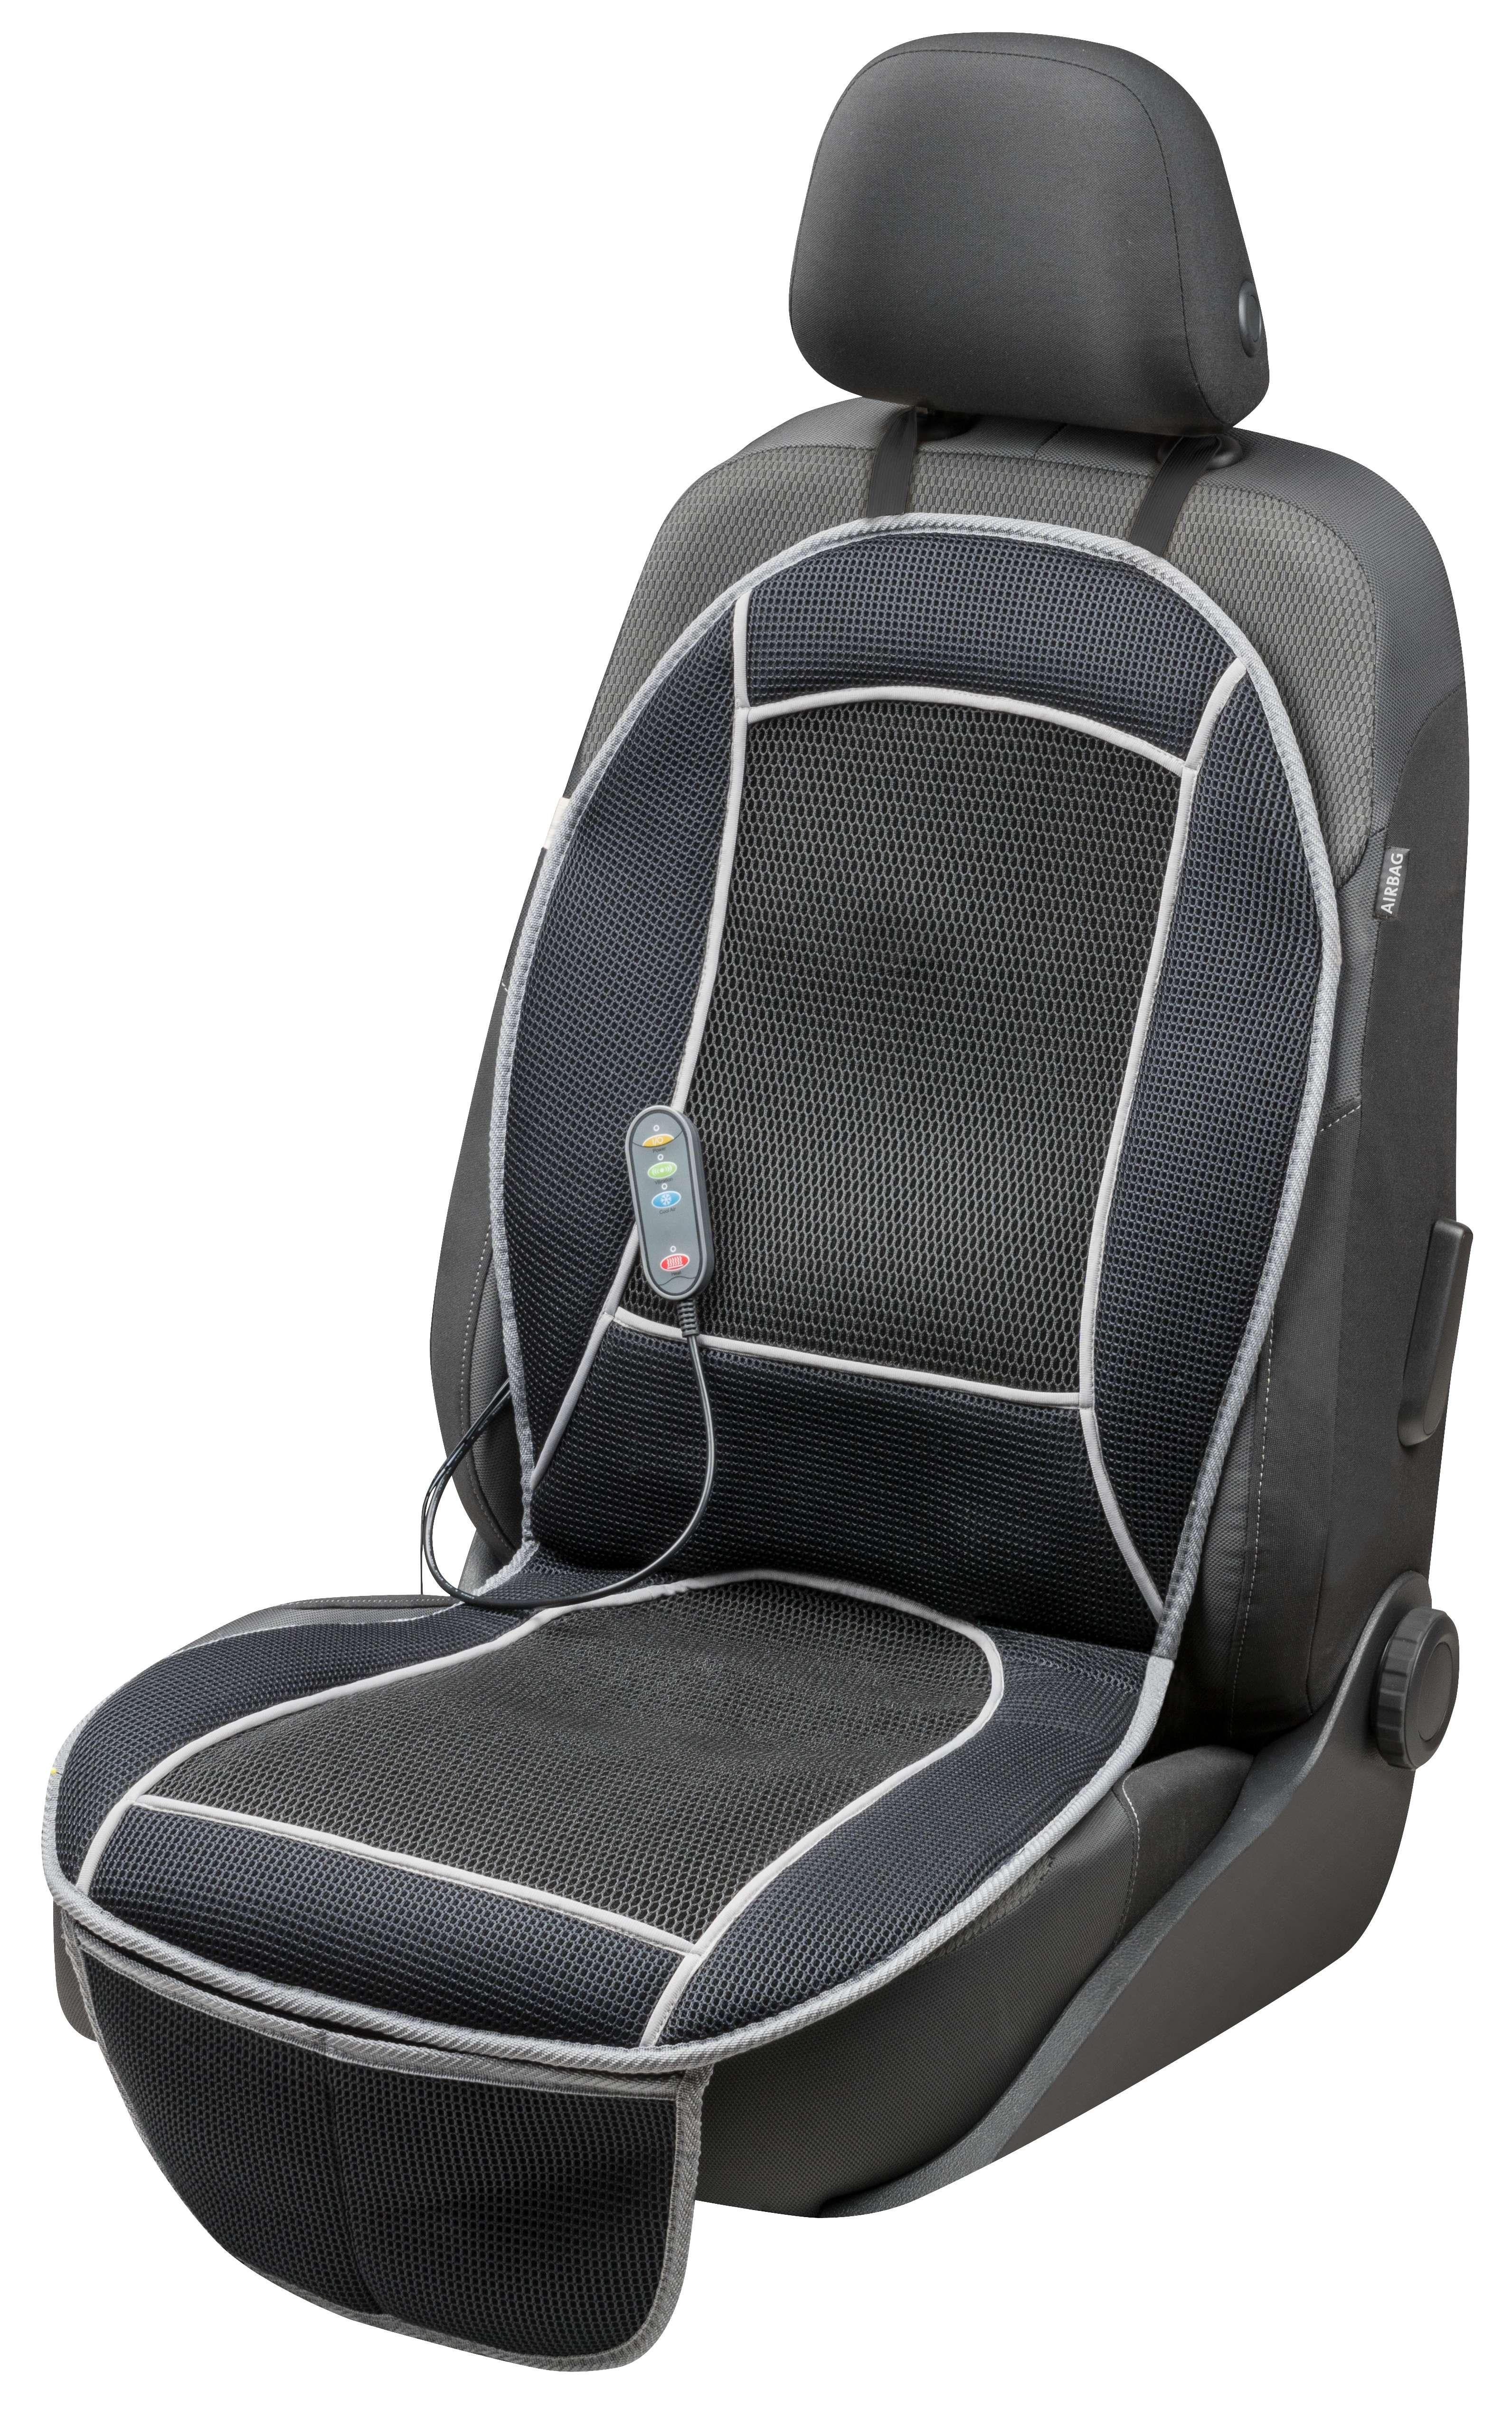 Heated Seat Cover 16650 WALSER 16650 original quality